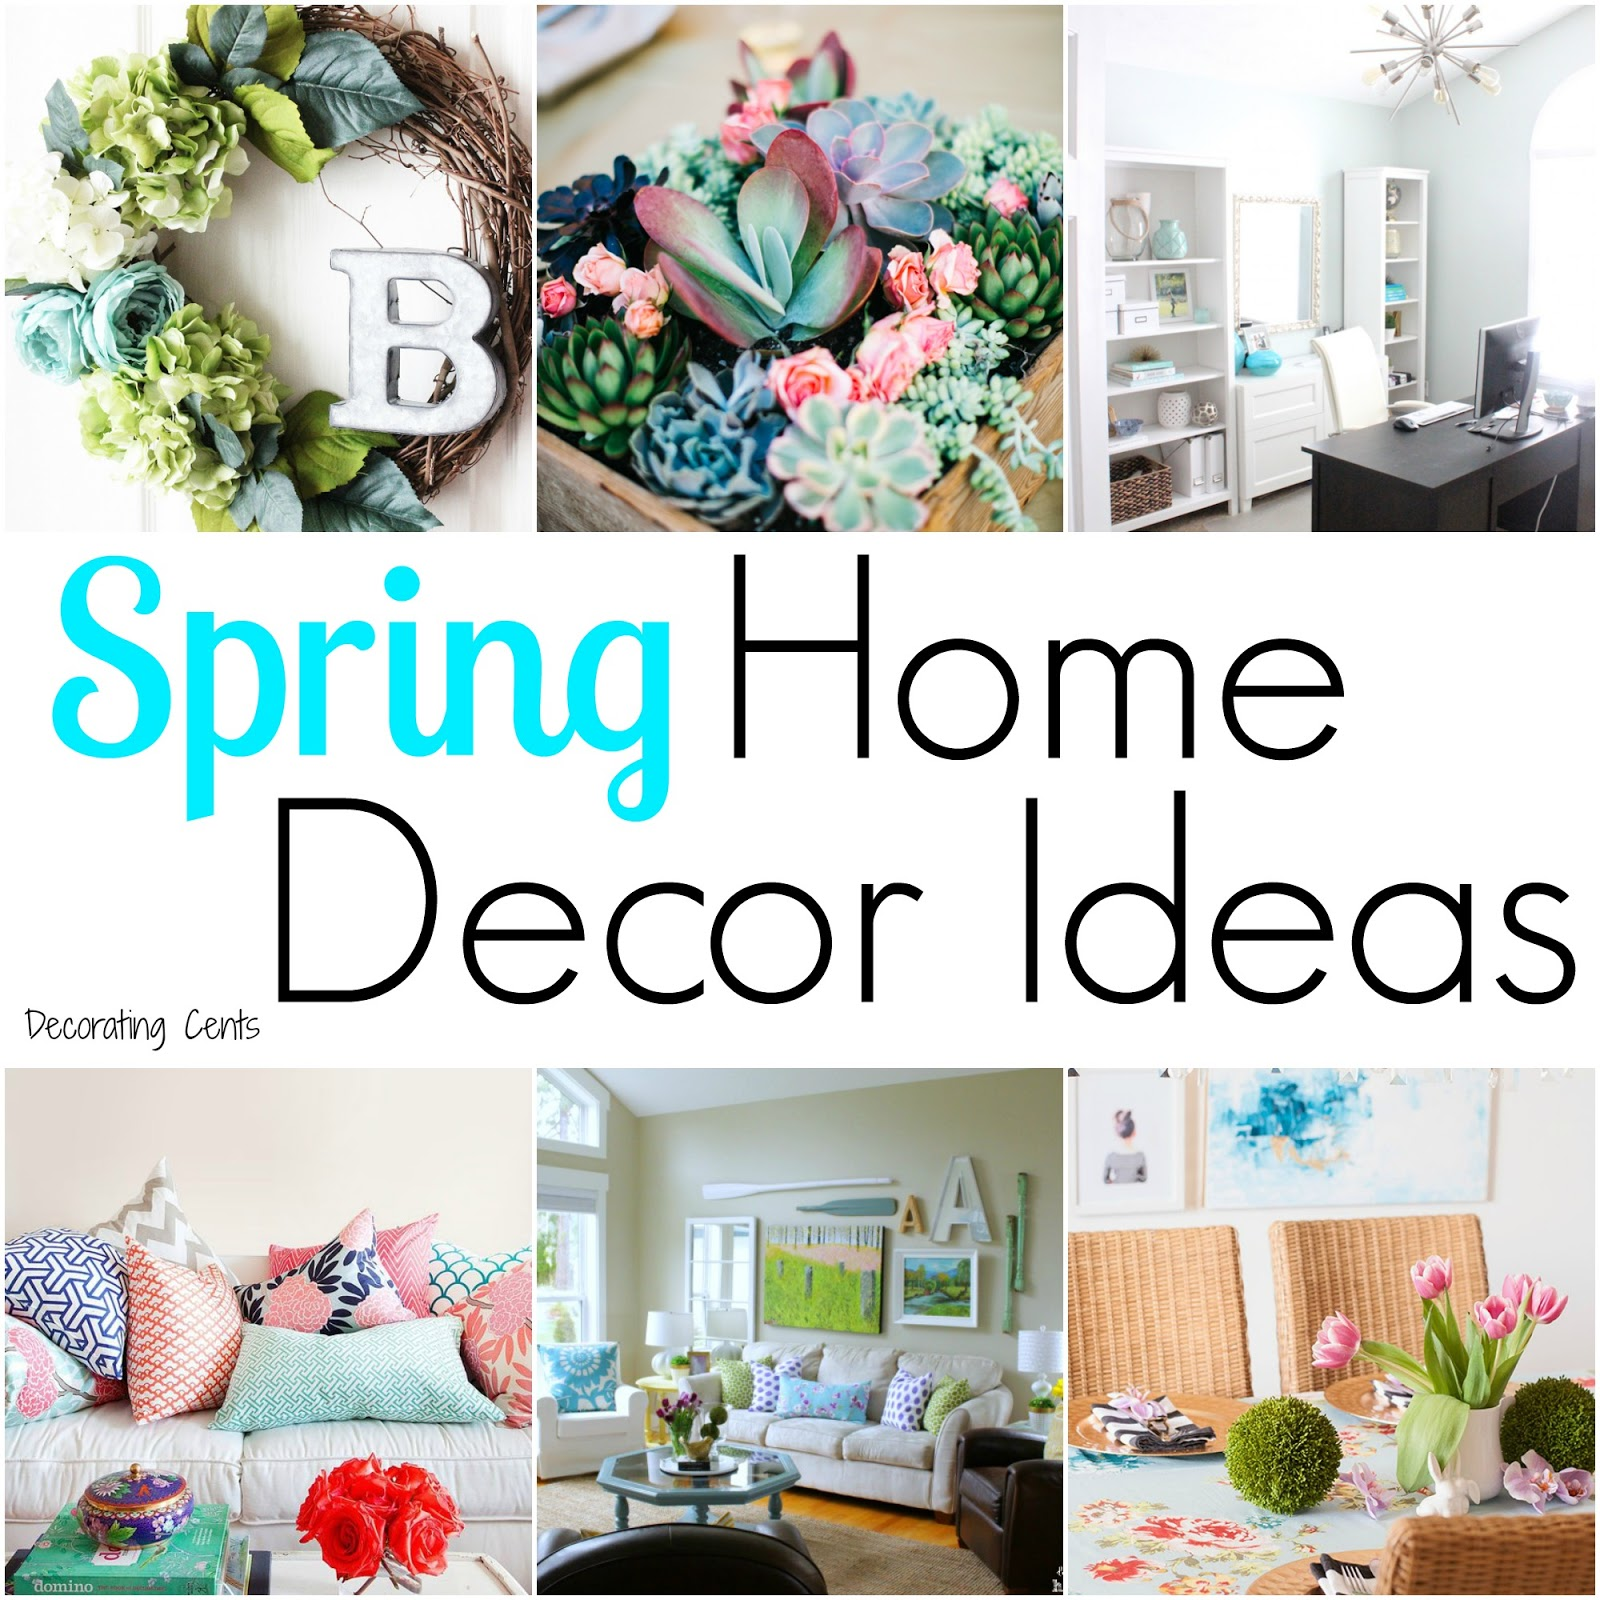 Decorating cents spring home decor ideas for Home design ideas